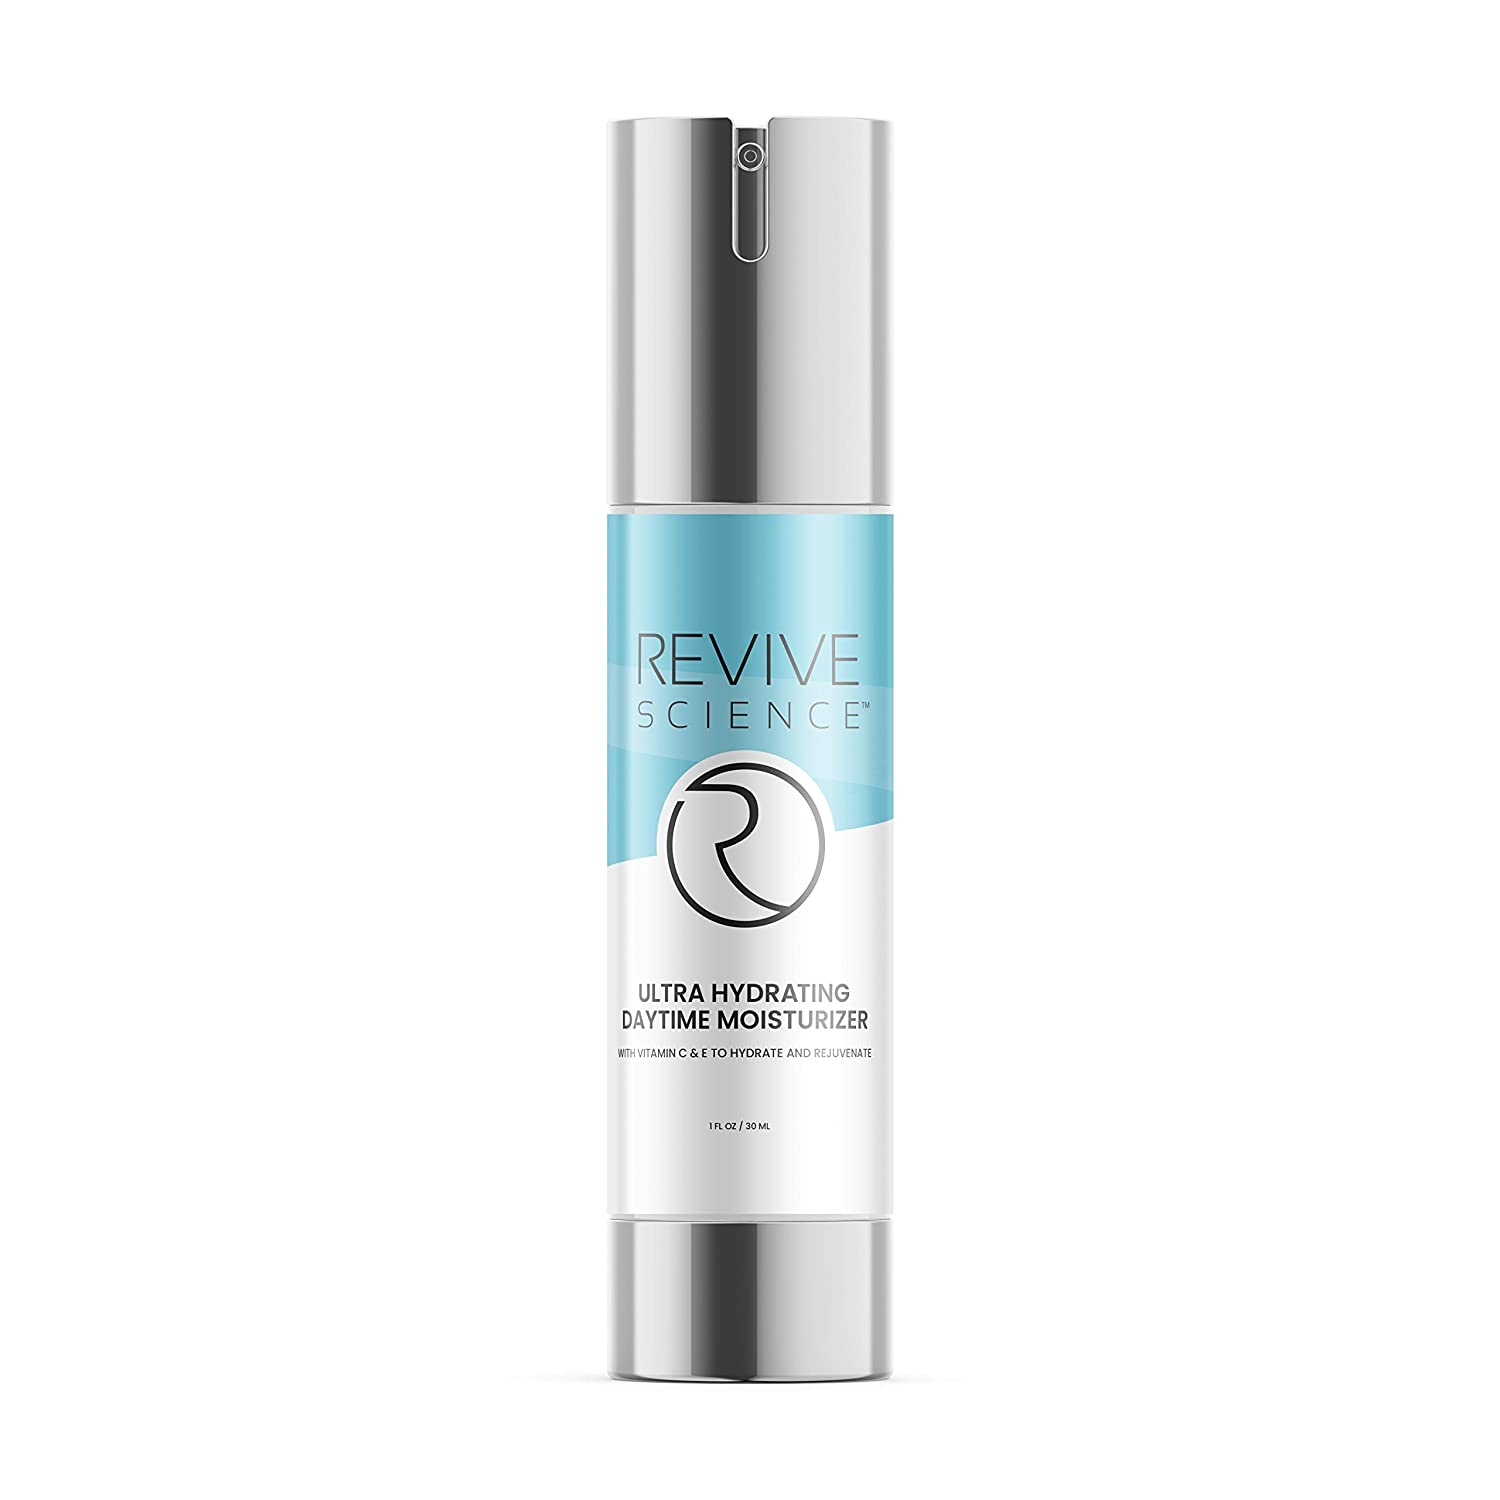 Revive Science Ultra Hydrating Daytime Ageless Moisturizer for Face, Eyes & Neck to Reduce Appearance of Wrinkles & Fine Lines, Brighten Skin Tone & Increase Collagen for Men & Women, 1 oz